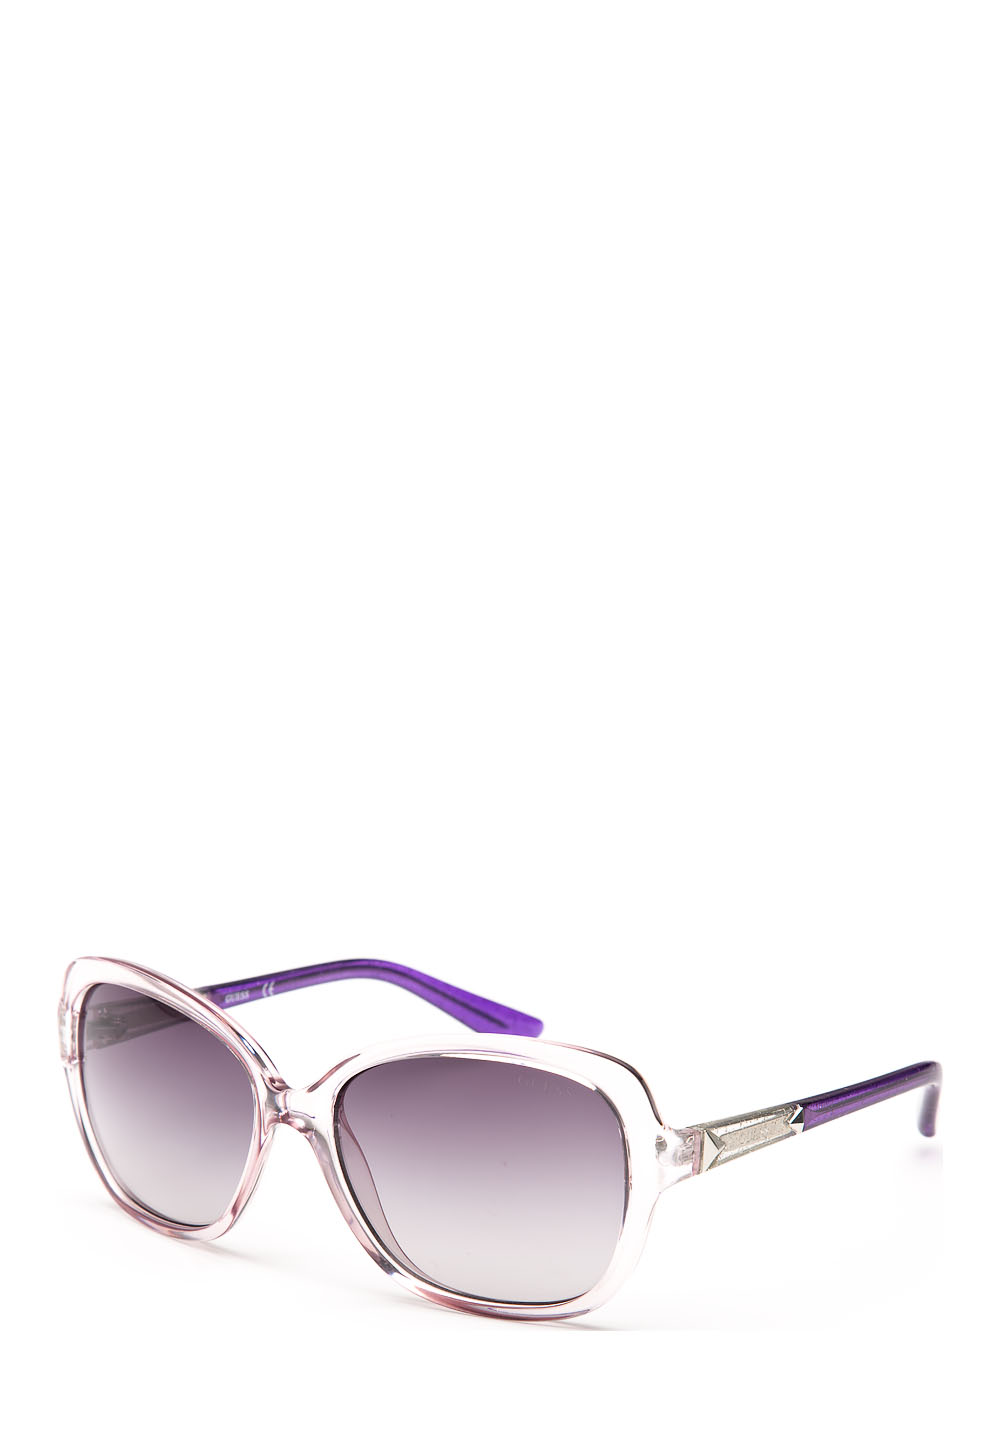 Sonnenbrille Gu7455, UV 400, transparent lila